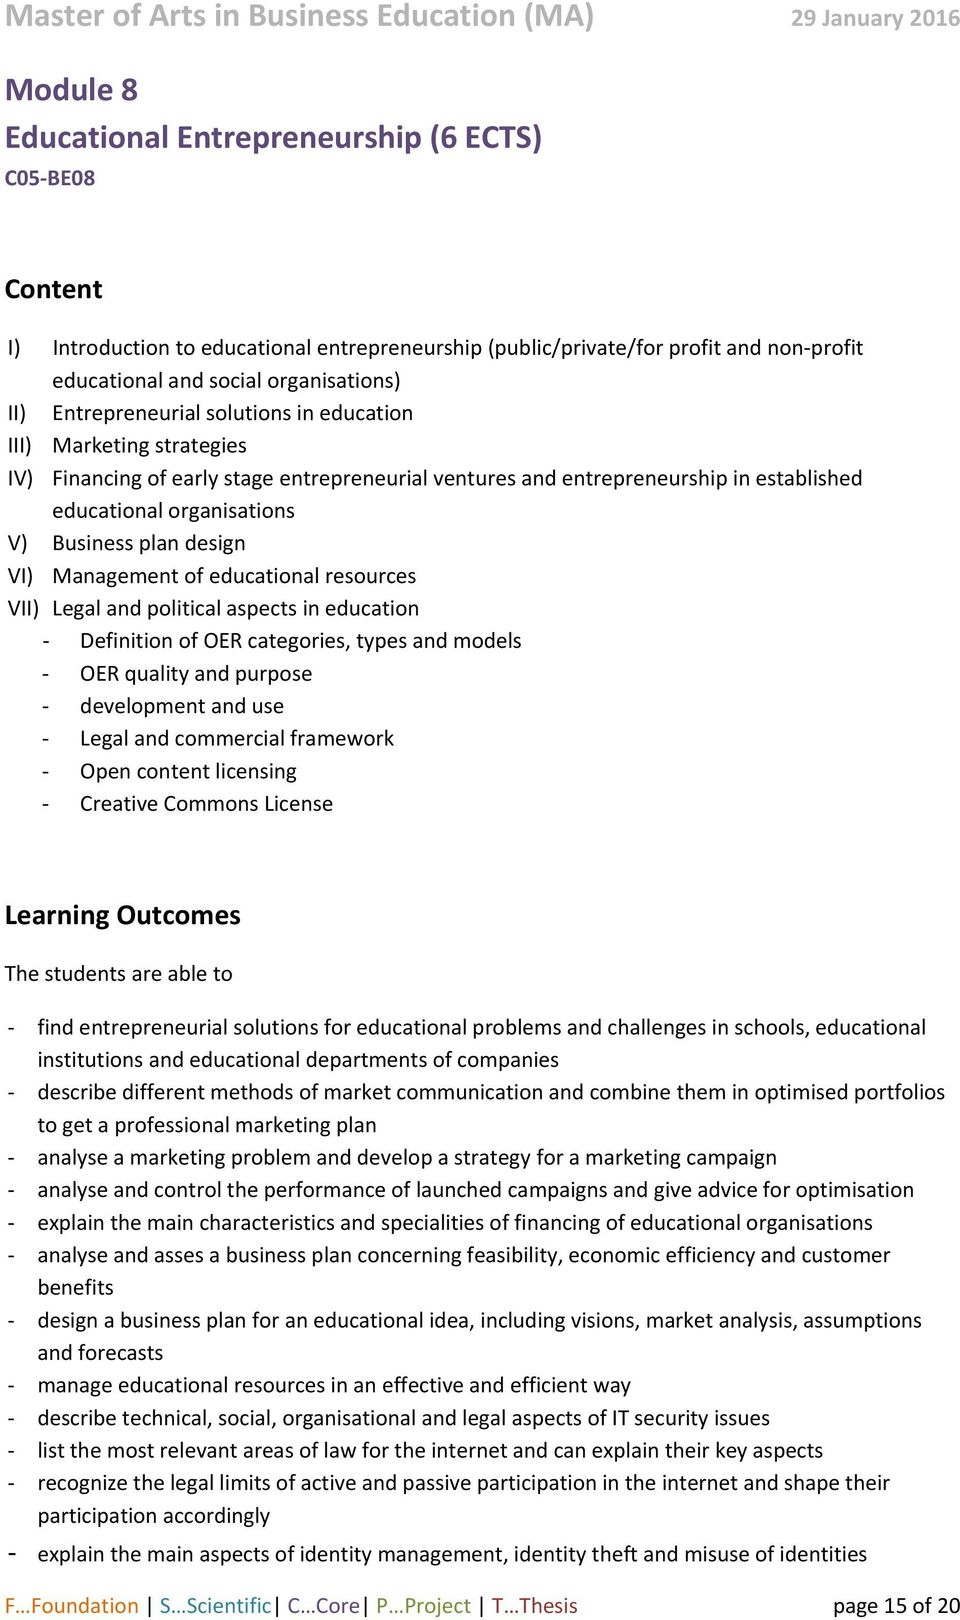 design VI) Management of educational resources VII) Legal and political aspects in education Definition of OER categories, types and models OER quality and purpose development and use Legal and